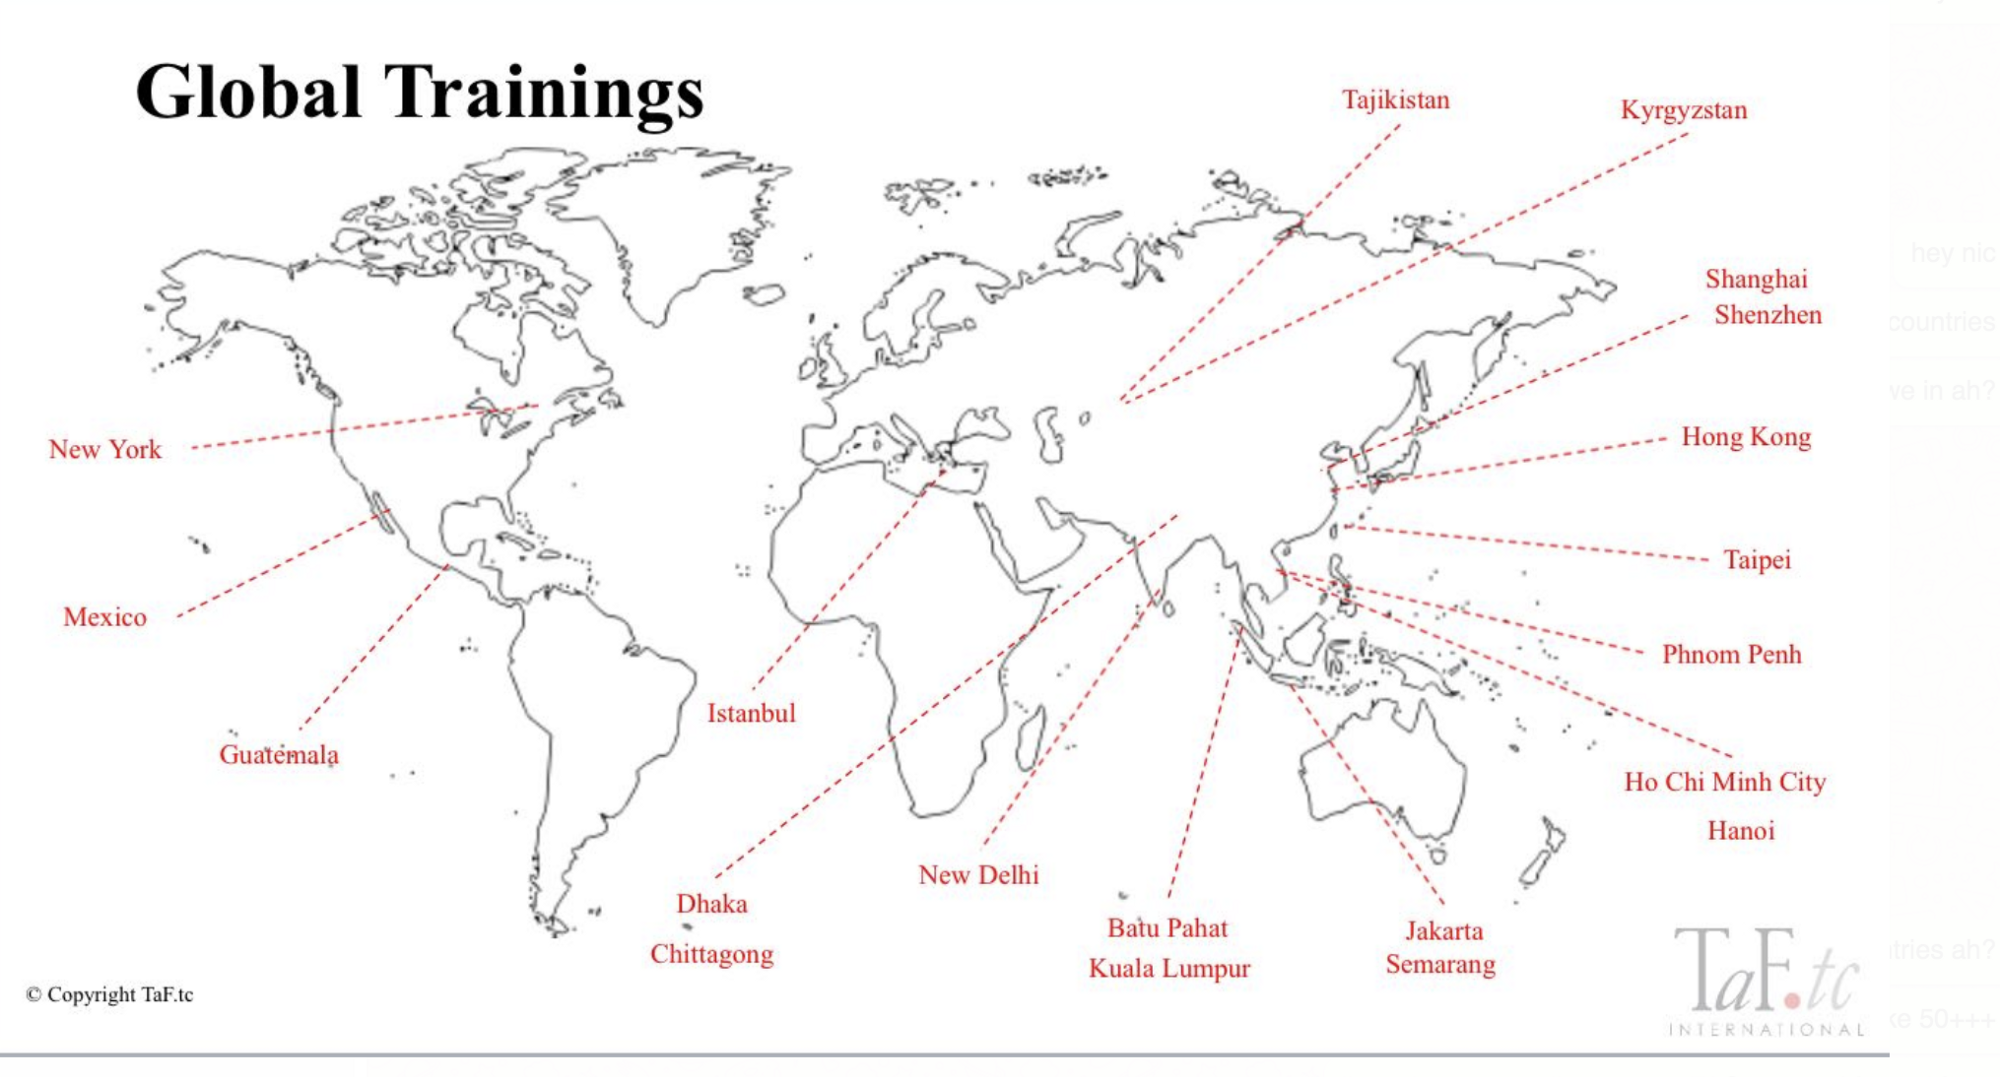 Global Trainings of Textile and Fashion Industry Training Centre (TaF.tc)